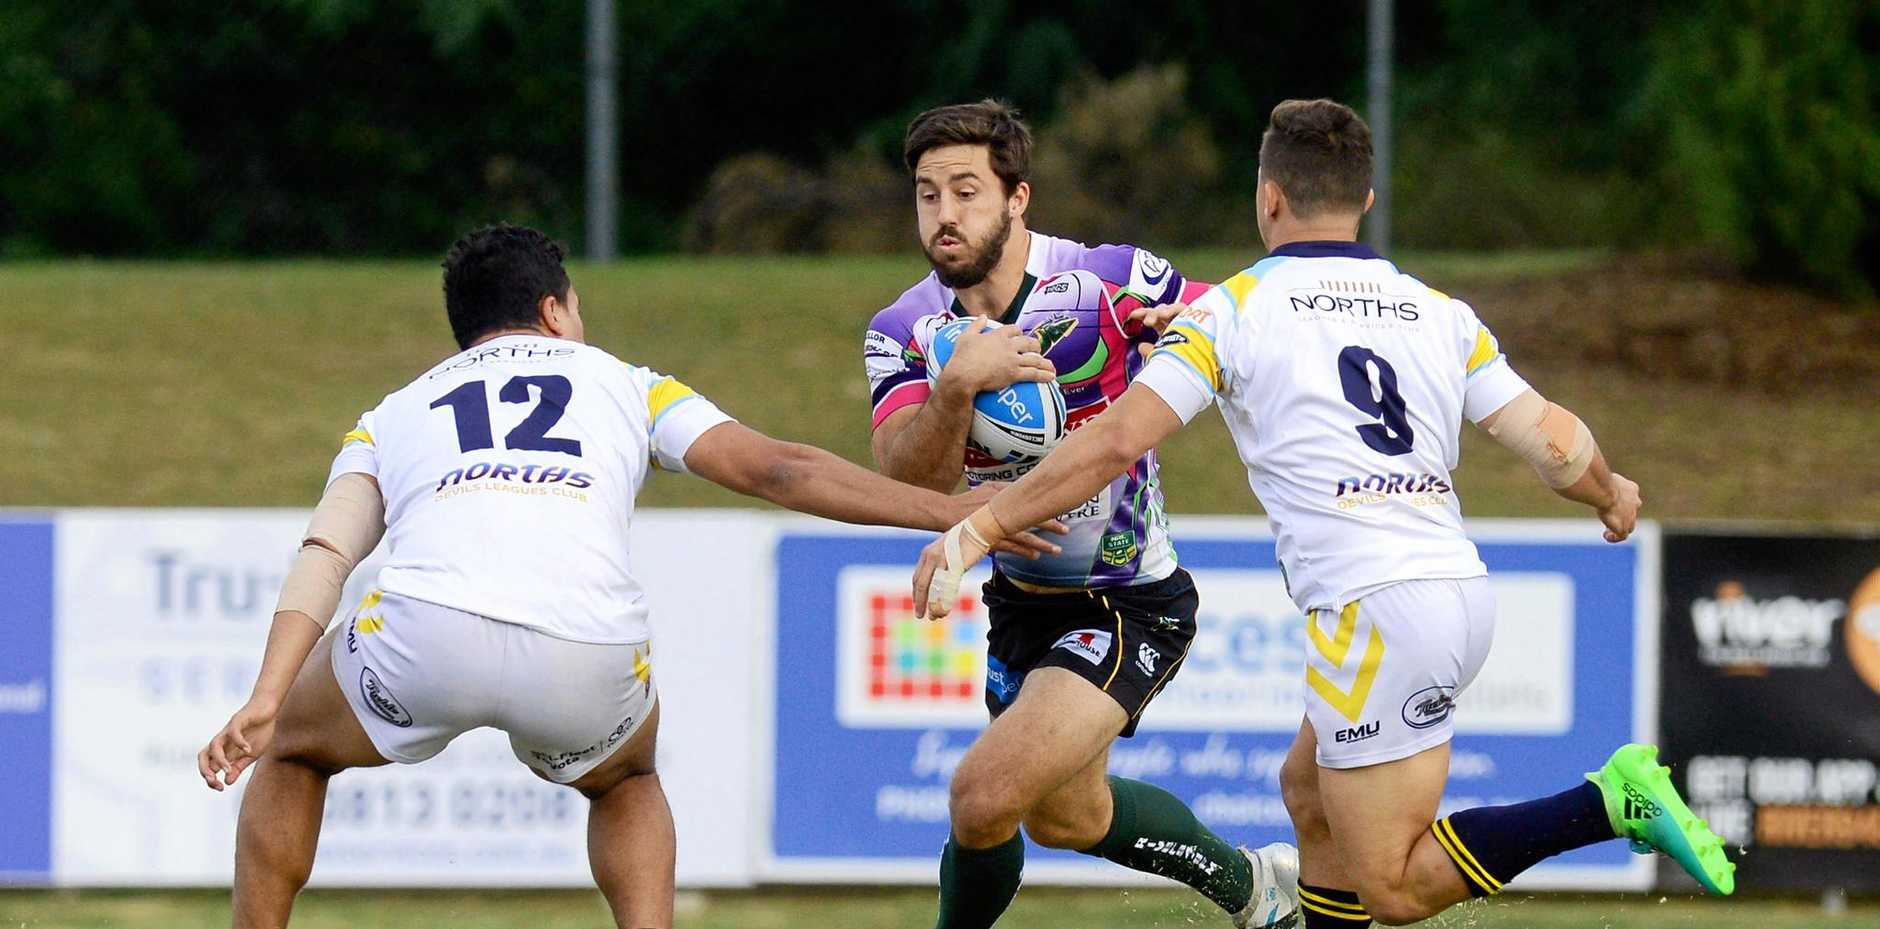 WELL PLAYED: Ben Hunt at the Rugby league Queensland Cup match between Ipswich Jets Vs Norths Devils at North Ipswich Reserve.